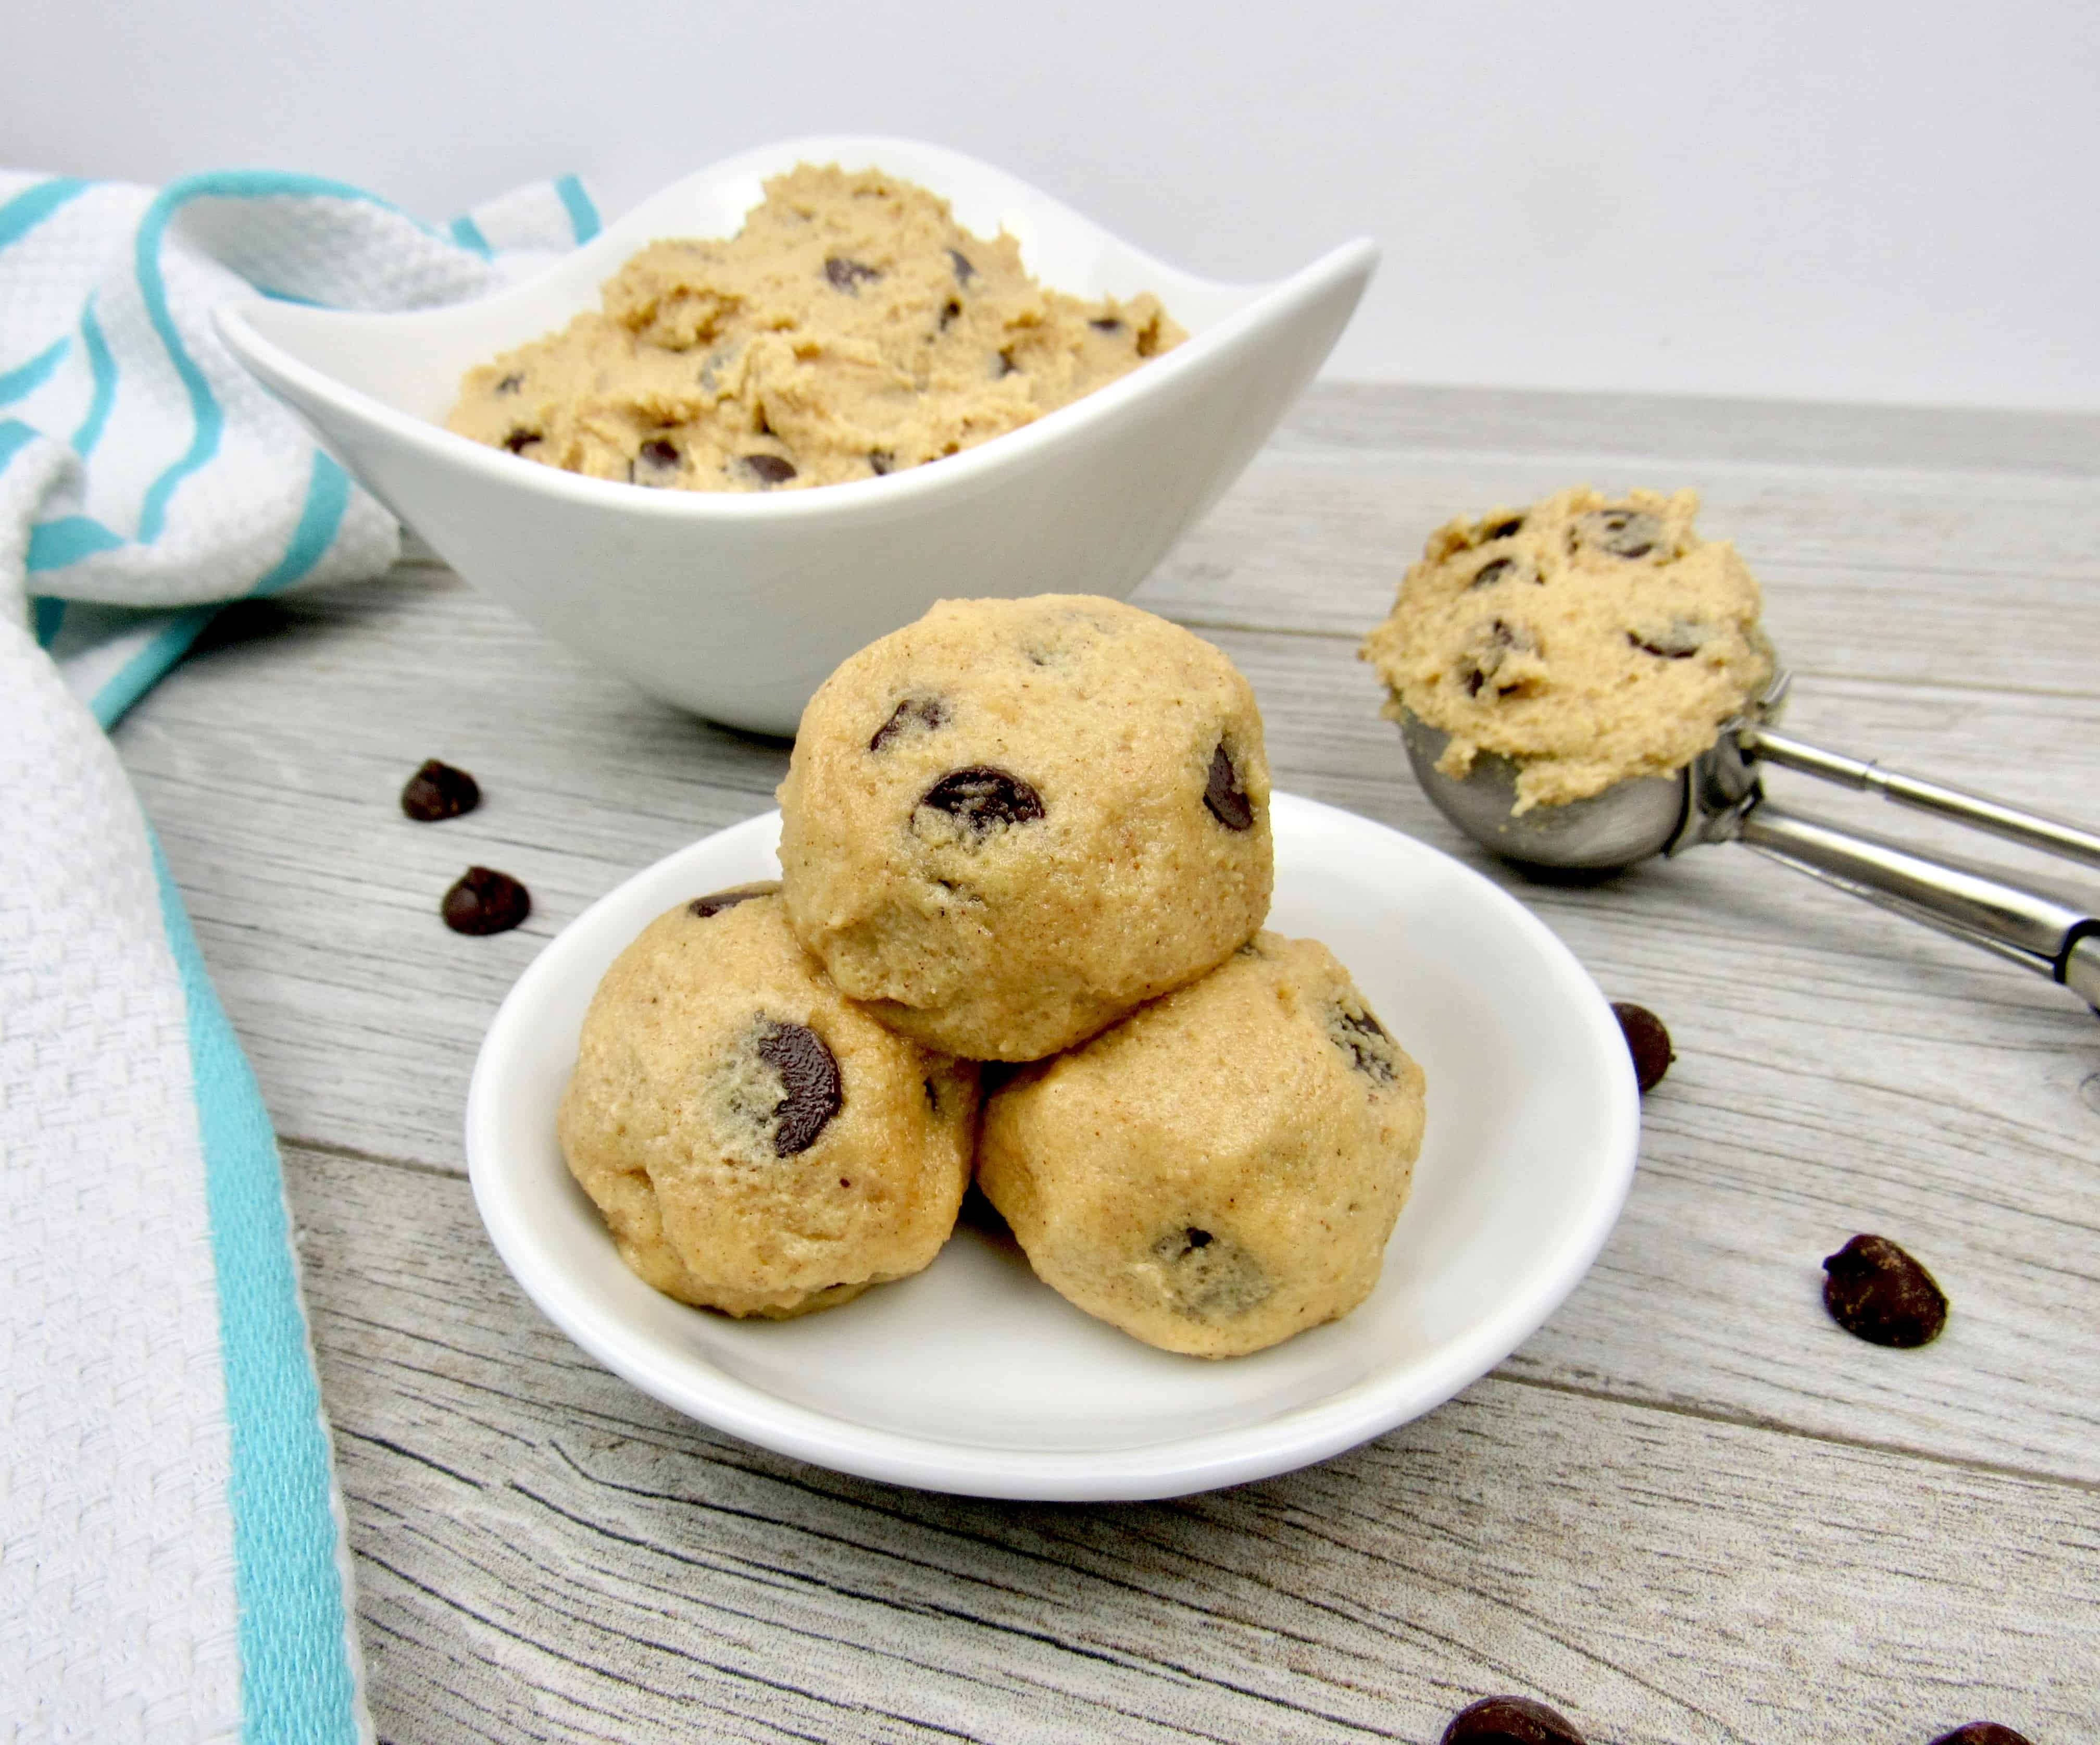 Edible Cookie Dough in Balls on Plate and in Bowl